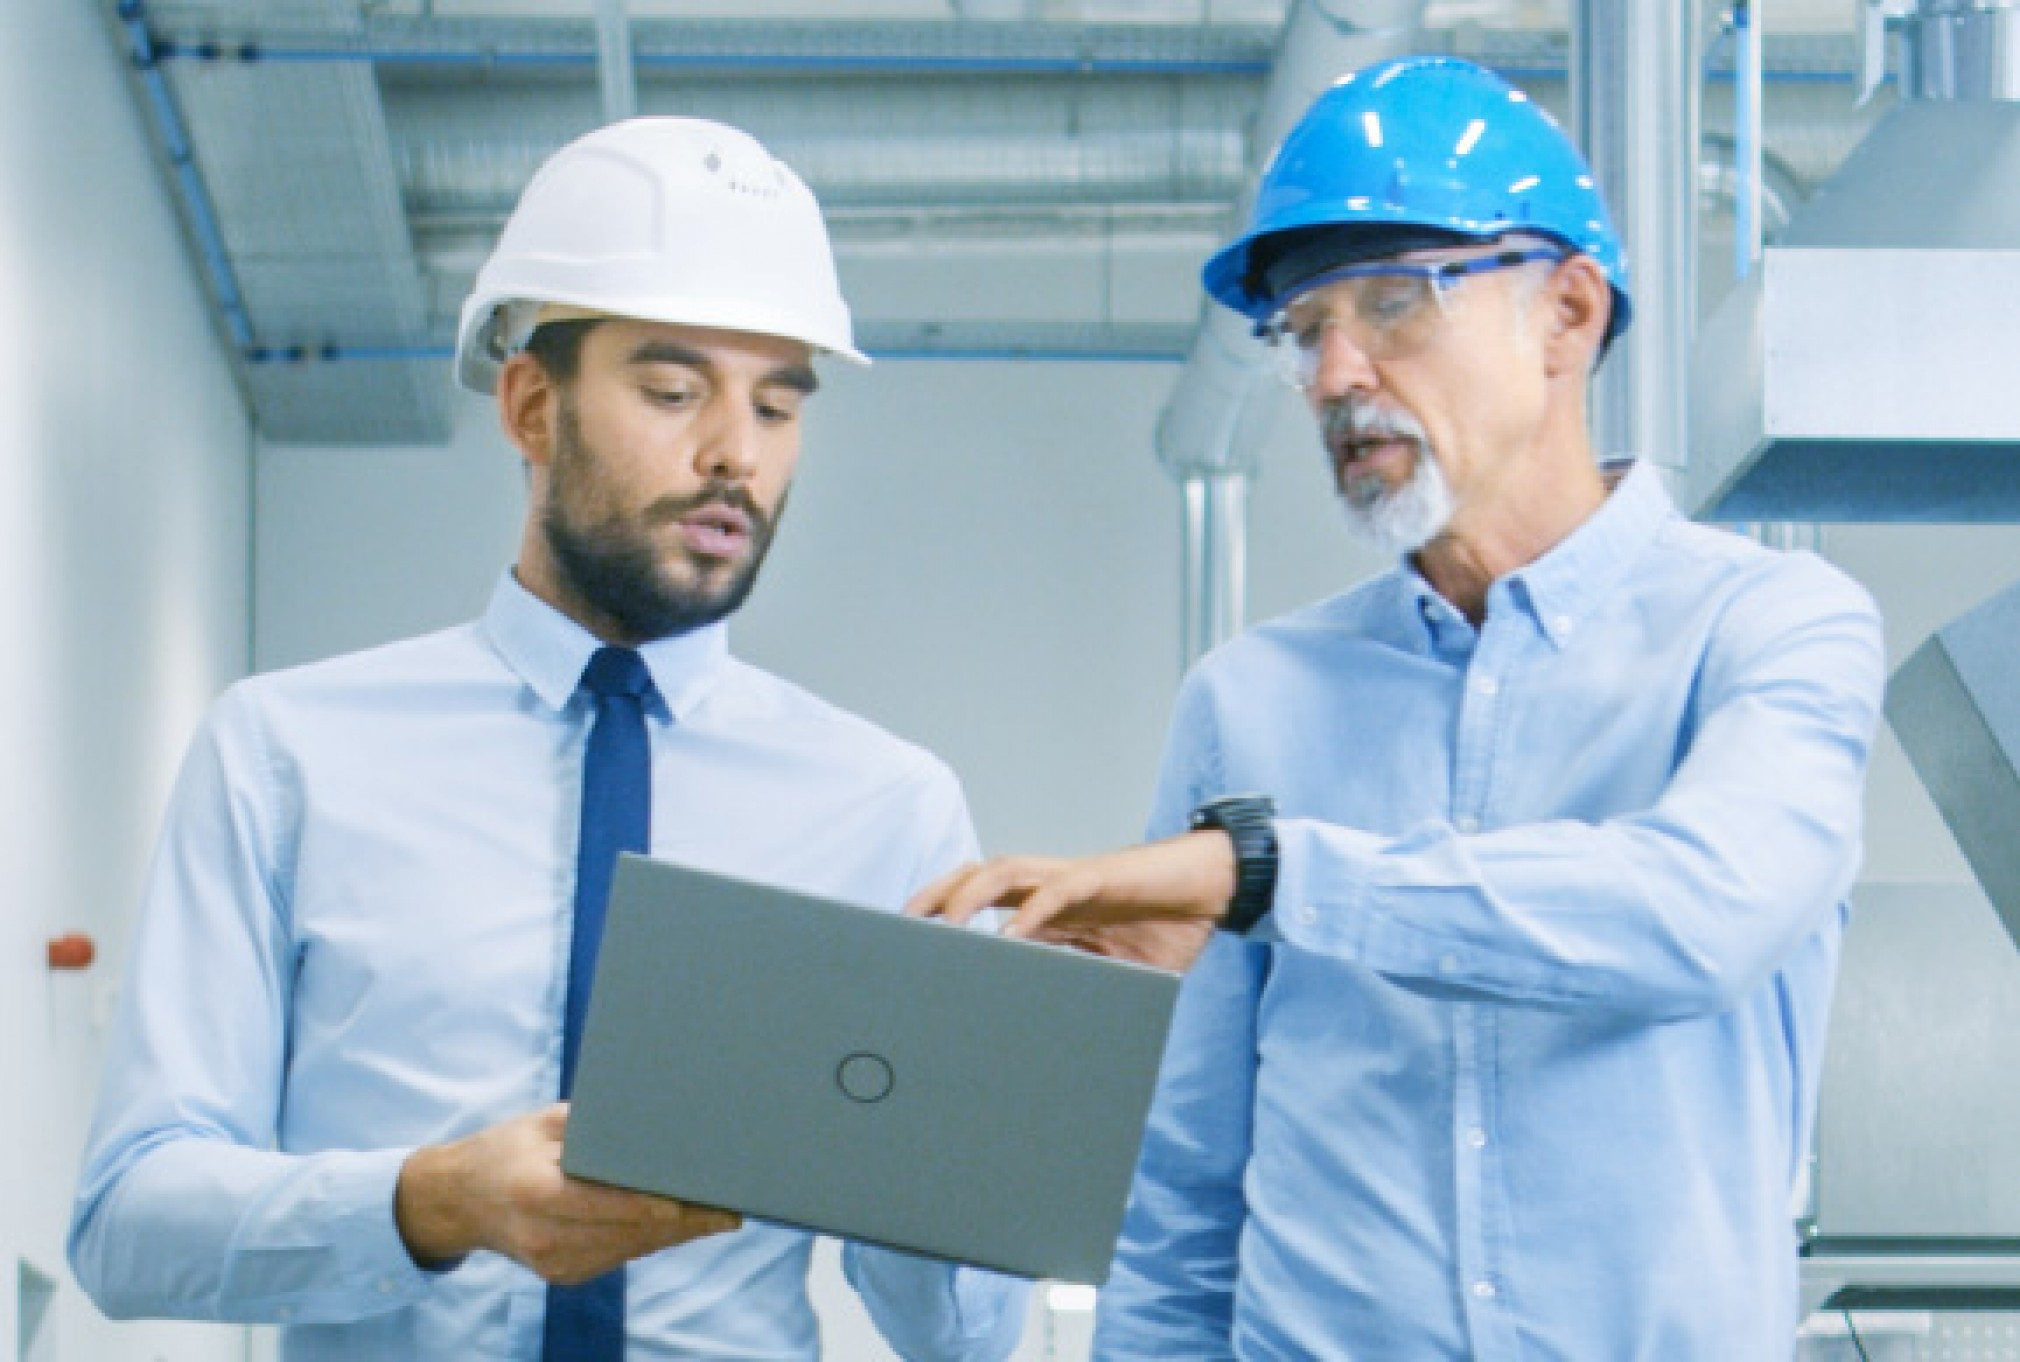 Industry 4.0 and the Rise of Electronic-Based Inspections